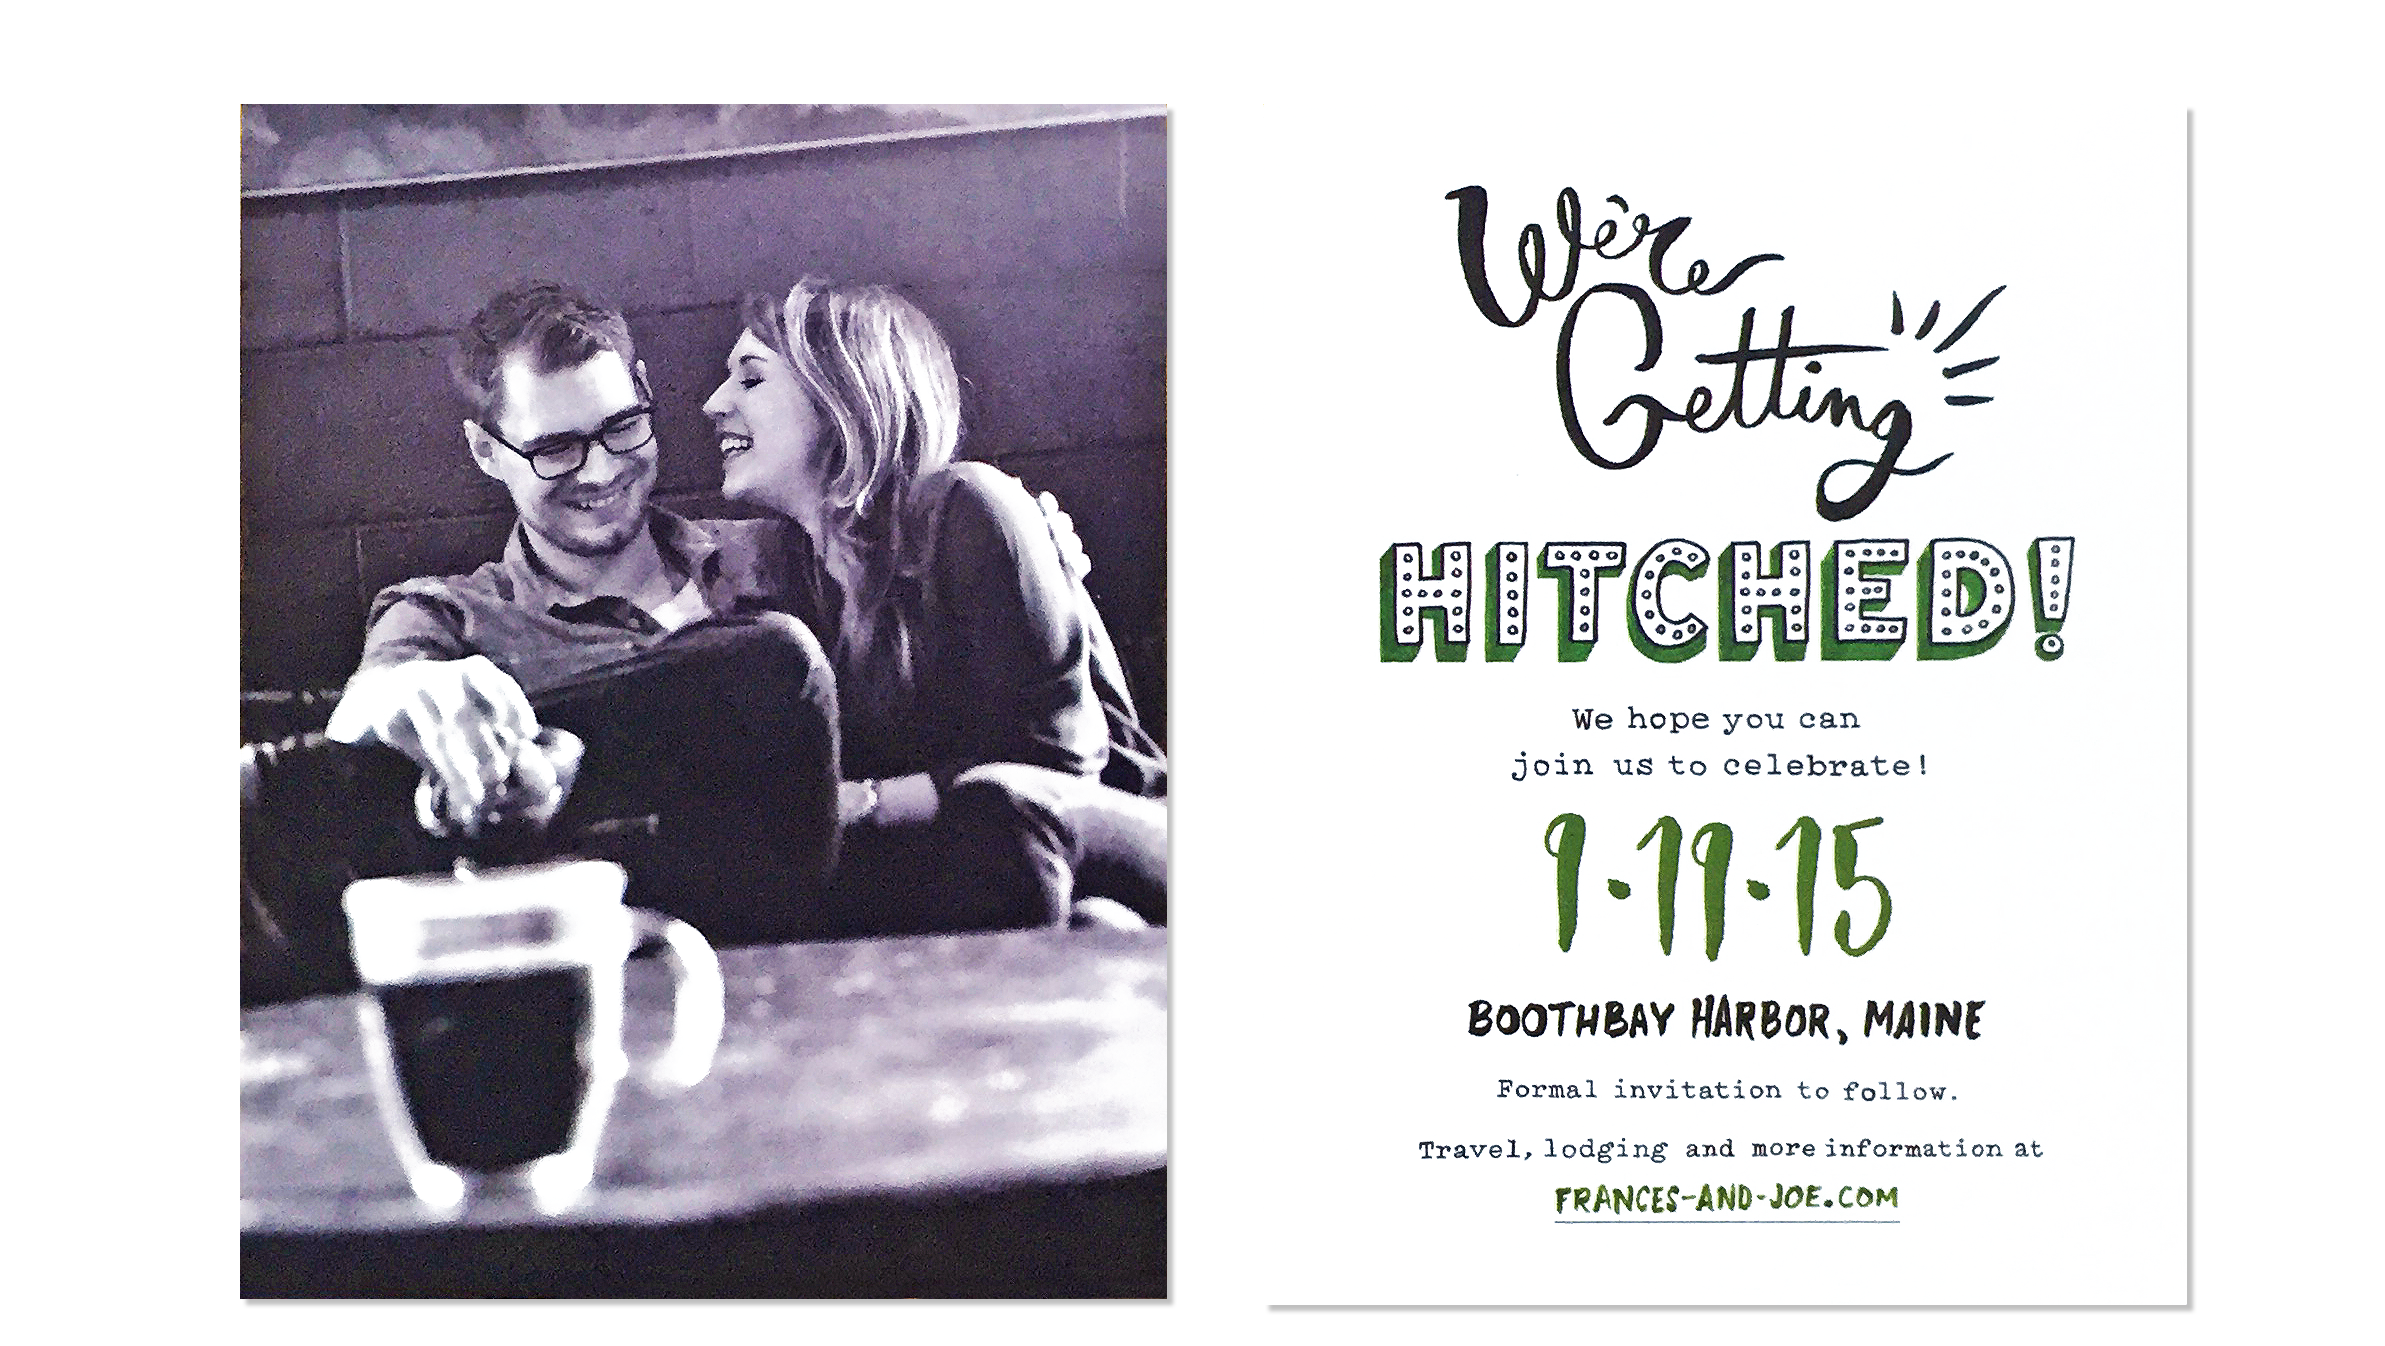 The save-the-date card is double-sided. Photo by Saed Hindash.